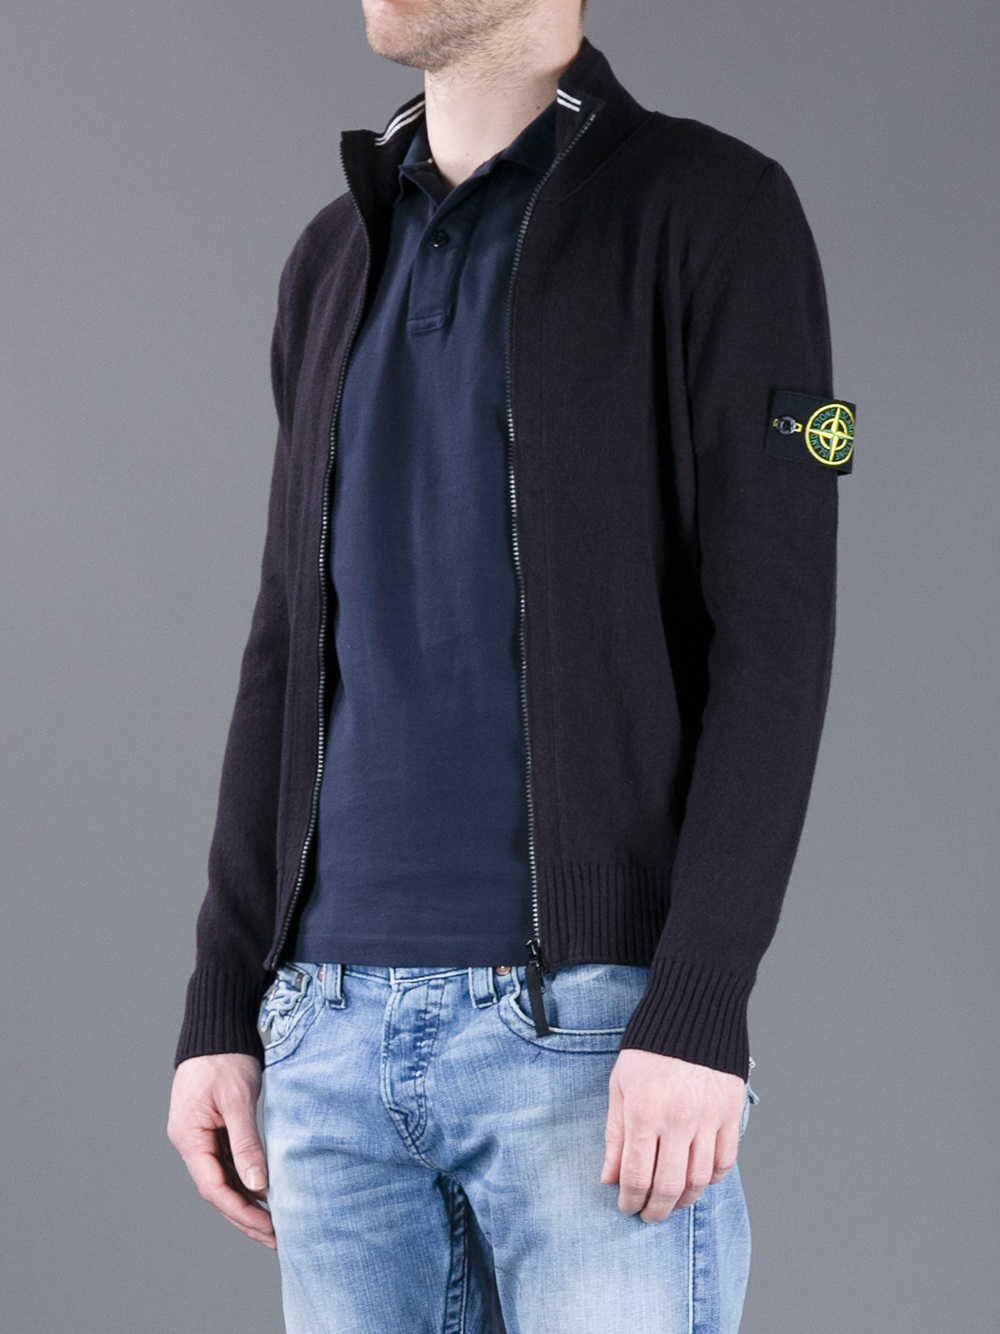 Lyst Stone Island Zip Up Knit In Black For Men